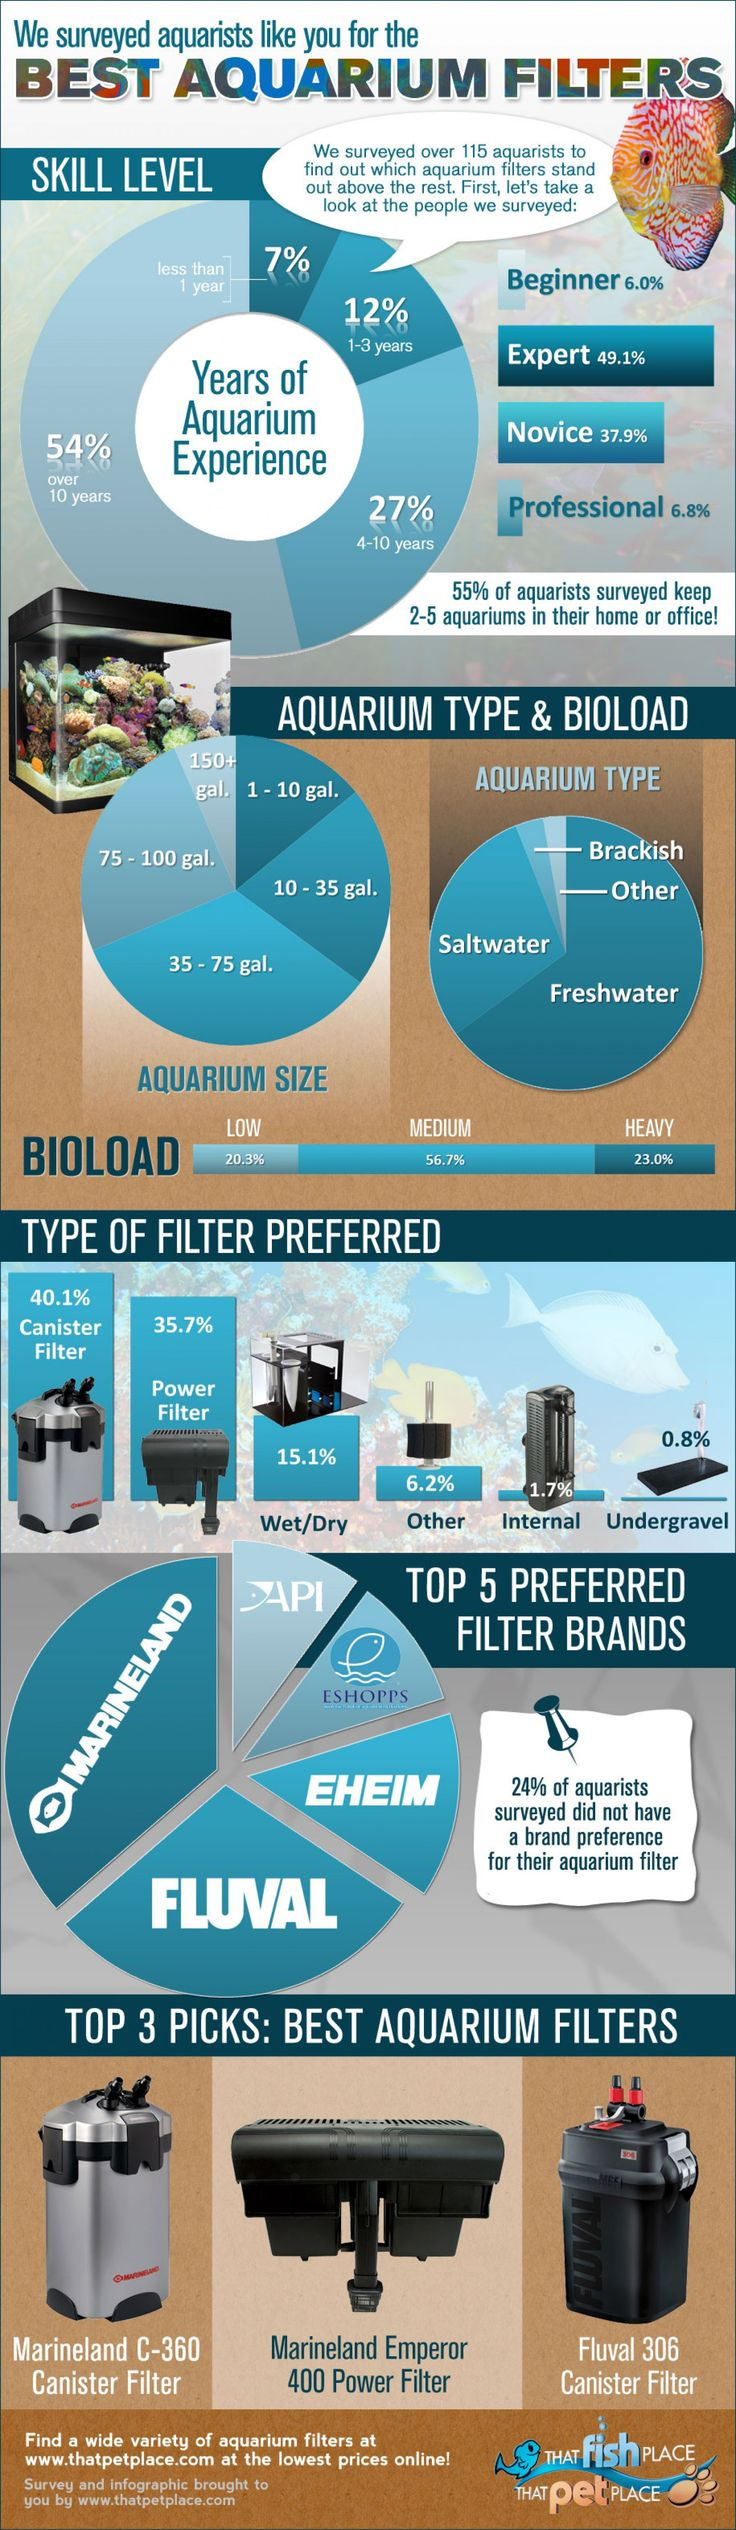 500 freshwater aquarium fish by greg jennings - Fish Care Tips Best Aquarium Filters Aquarists Survey I Had The Marineland Emporer It Is A Good Filter And Will Buy Another When I Do My Freshwater